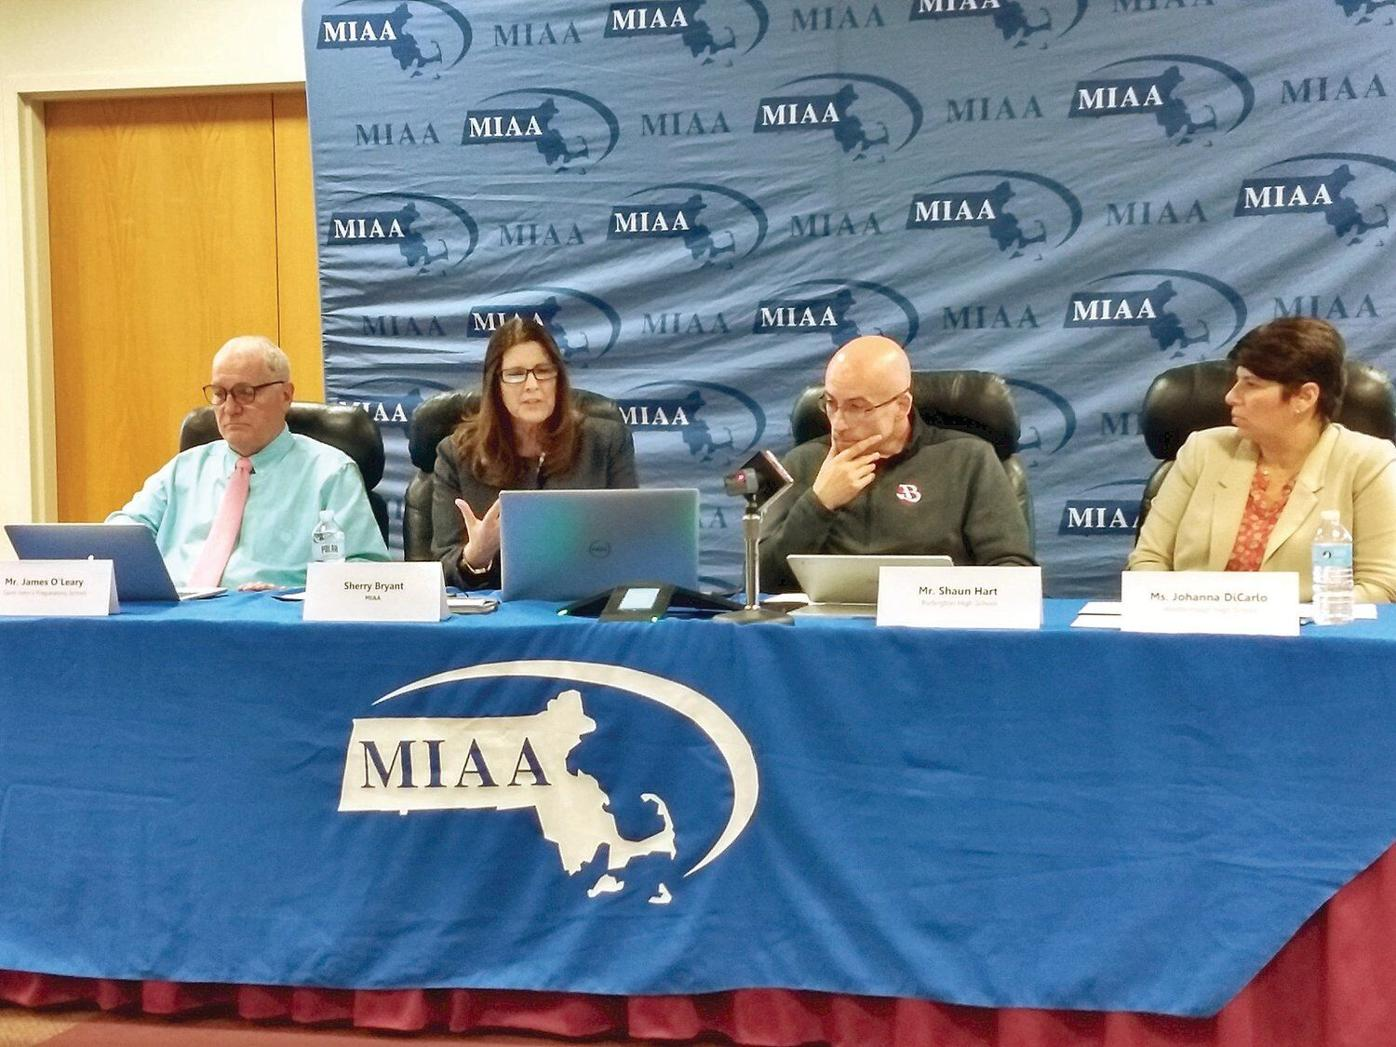 MIAA continues to roll out statewide tournament proposal with media presentation